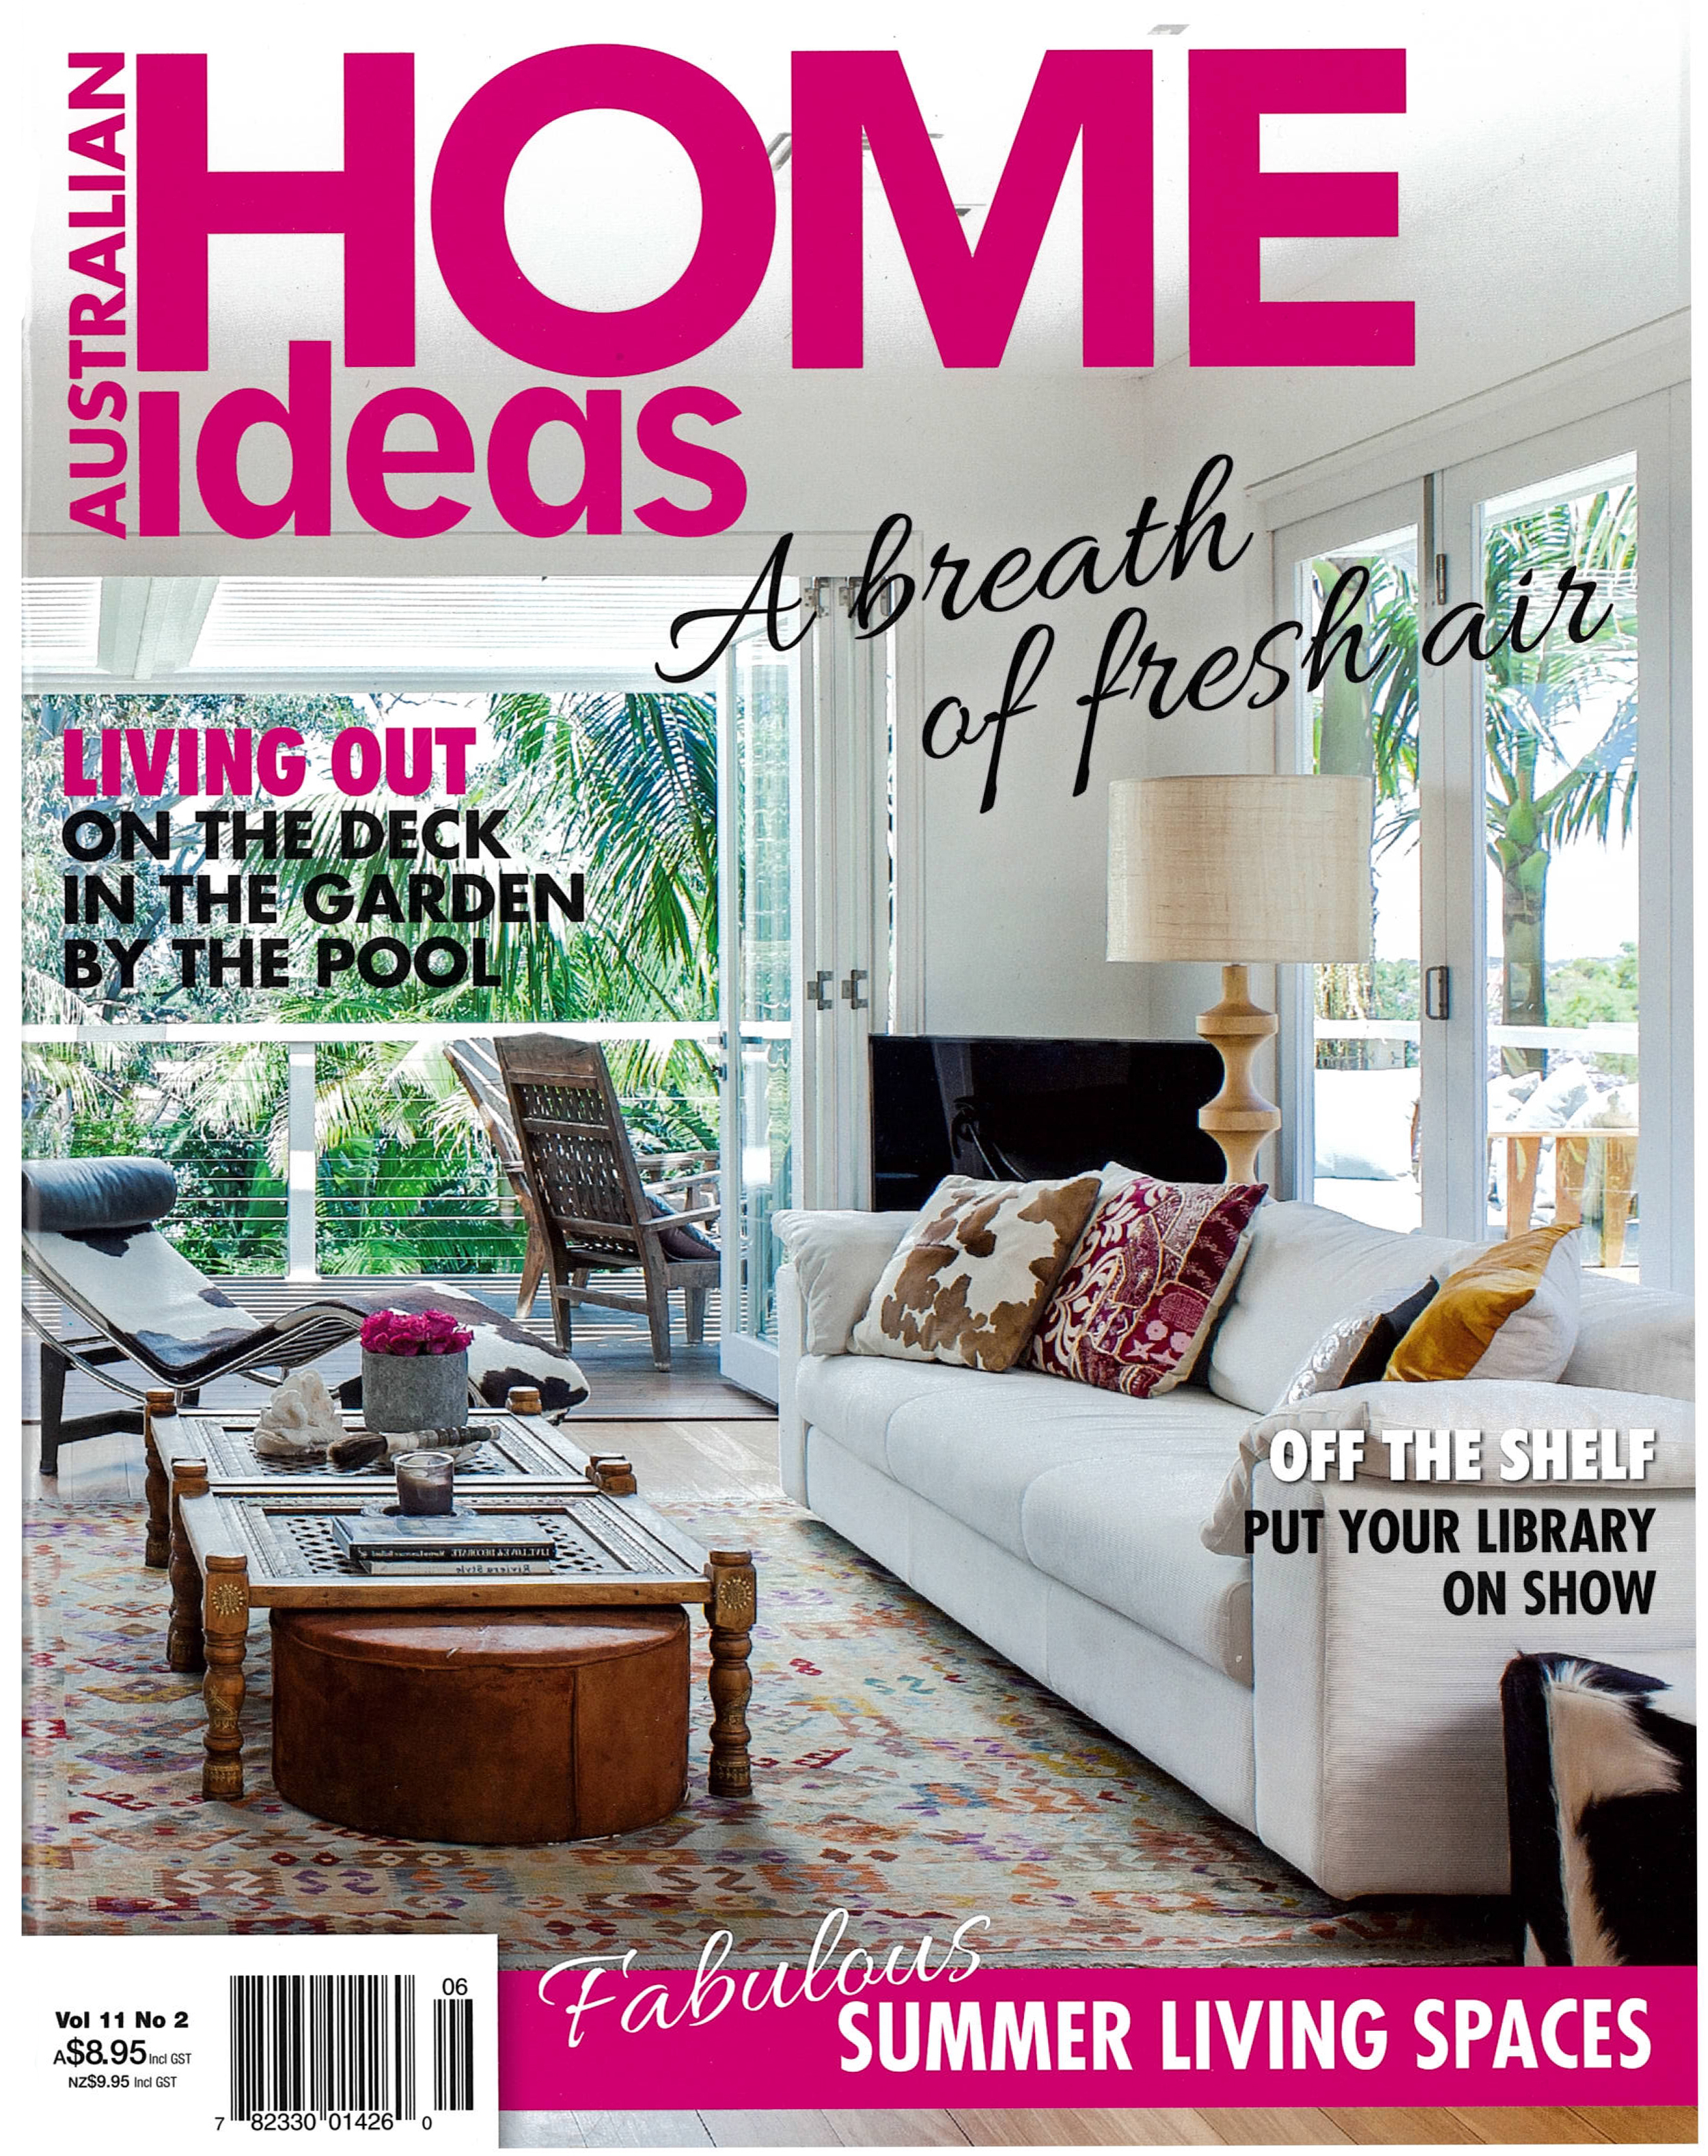 Home Ideas 2015 - Opposites Attract